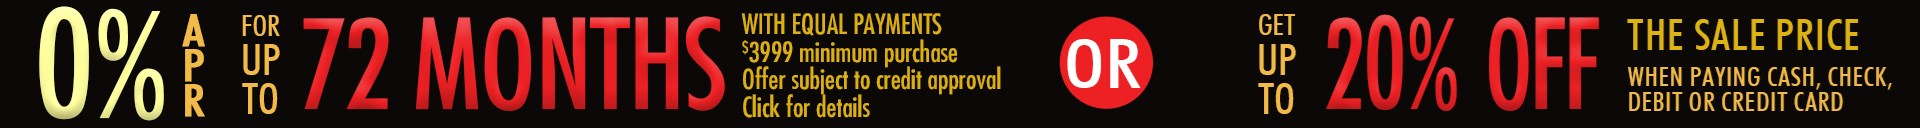 0% APR for up to 72 Months or save up to 20% off sale prices when paying by cash, check, debit, or credit card